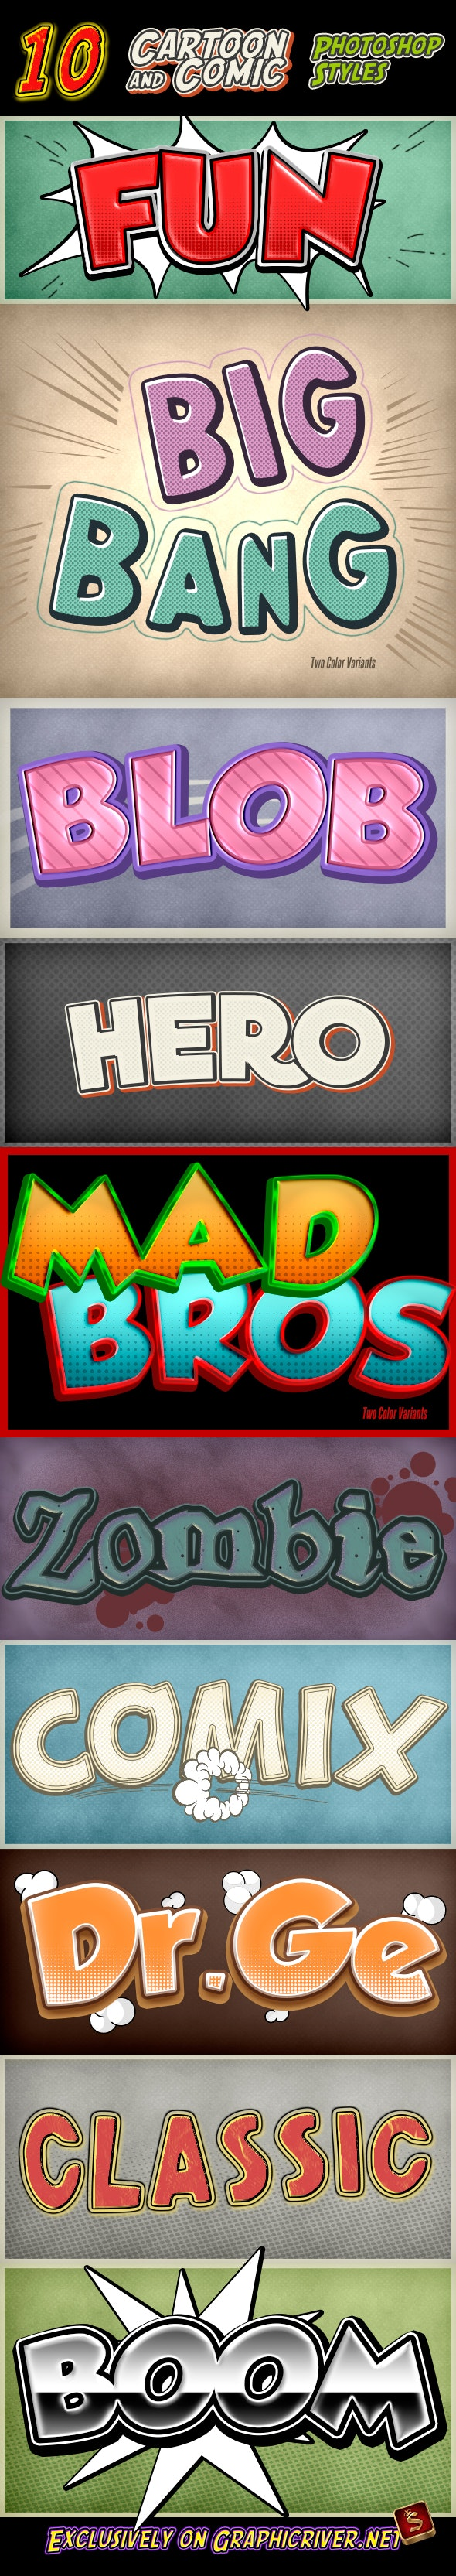 Cartoon and Comic Book Styles - Part 10 - Text Effects Styles